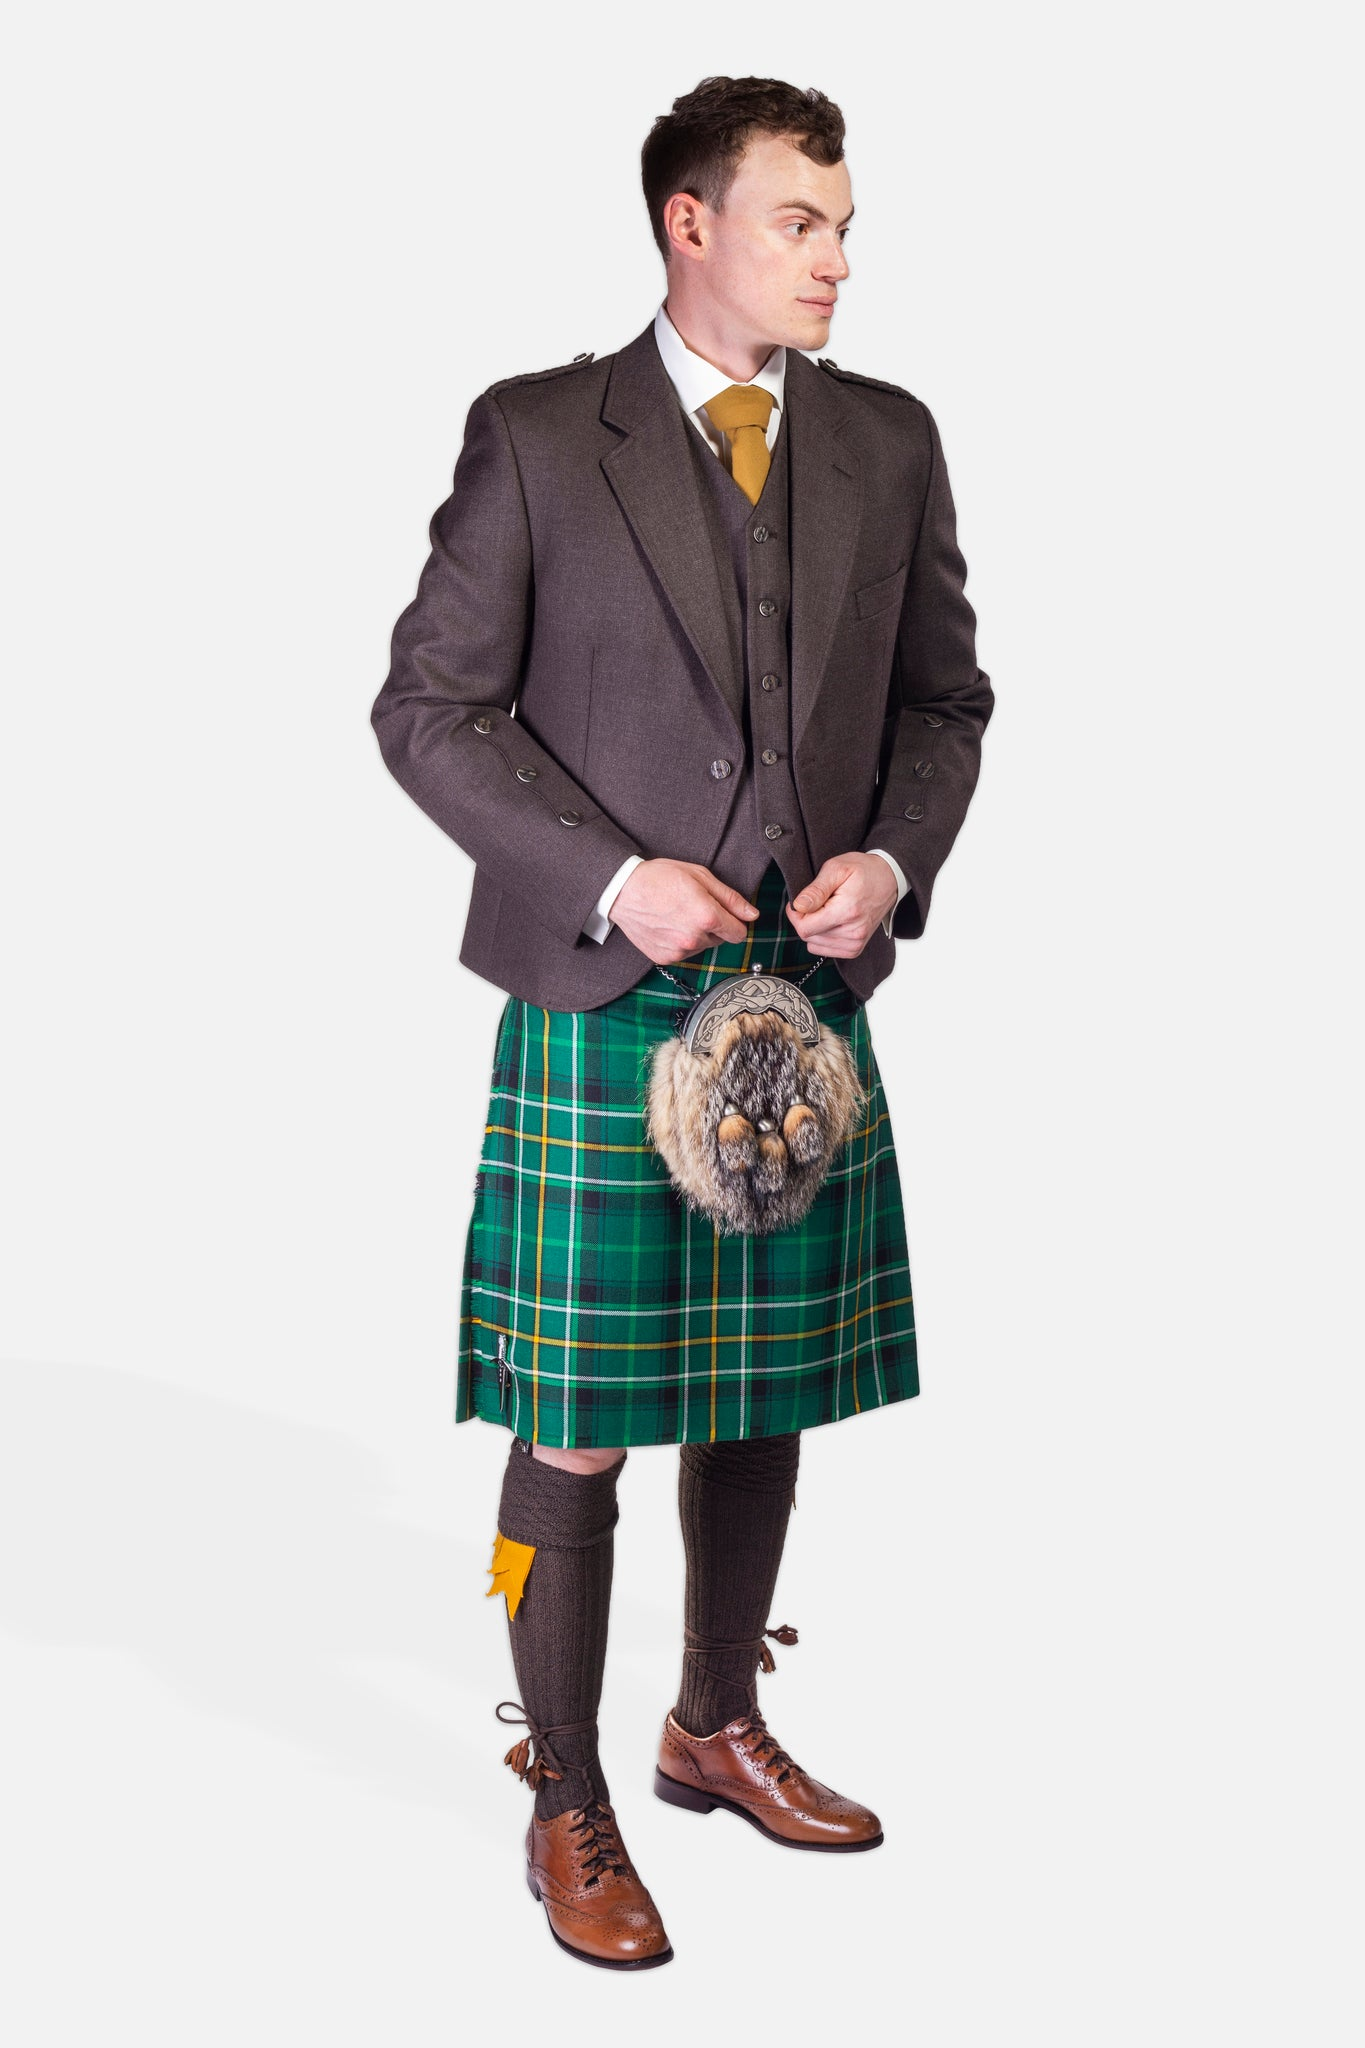 Celtic FC / Peat Holyrood Hire Outfit